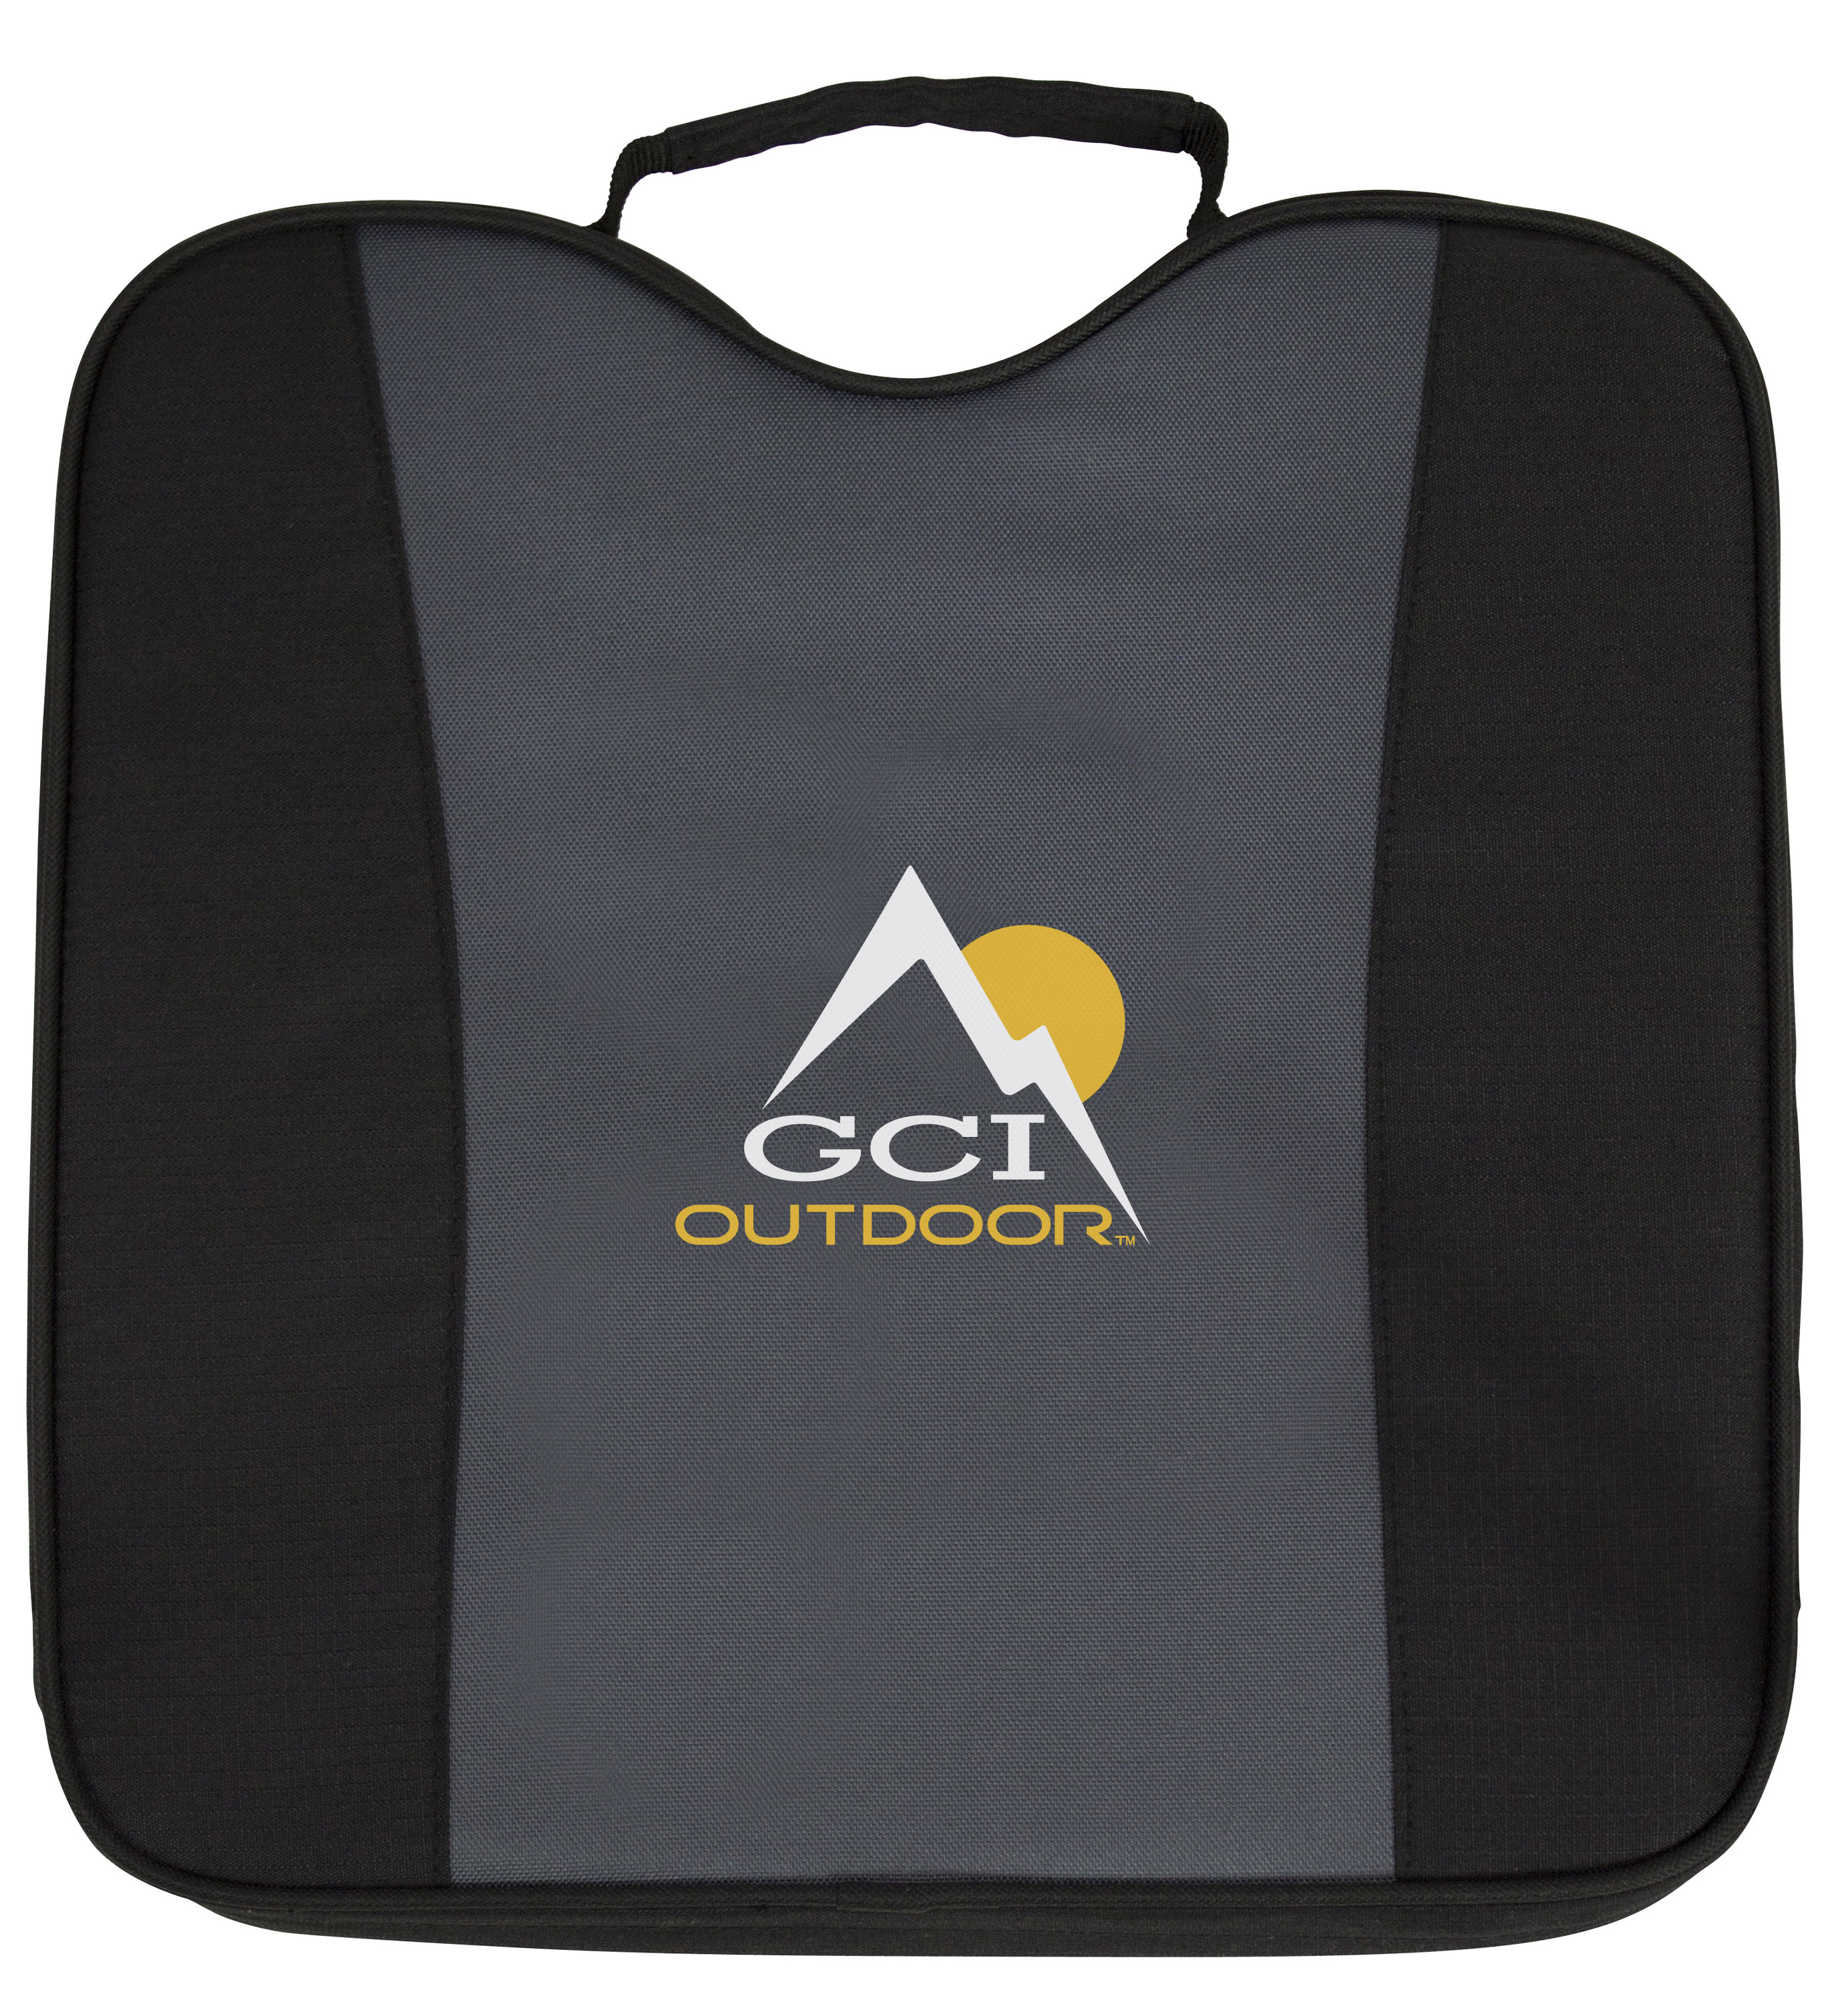 Comfort Cushion by GCI Outdoor